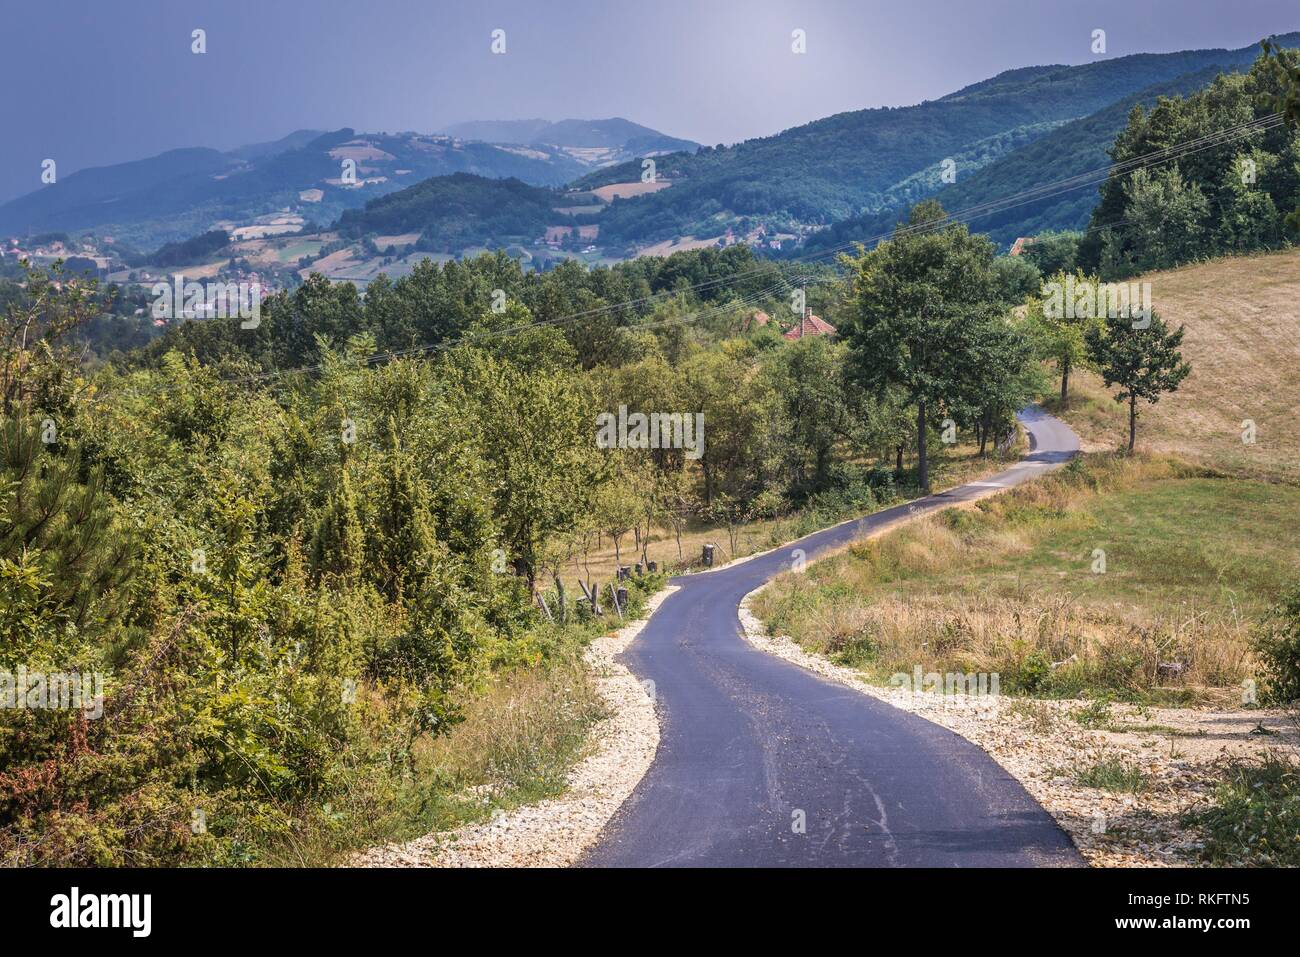 Road in Zlatibor mountainous region in western part of Serbia. - Stock Image